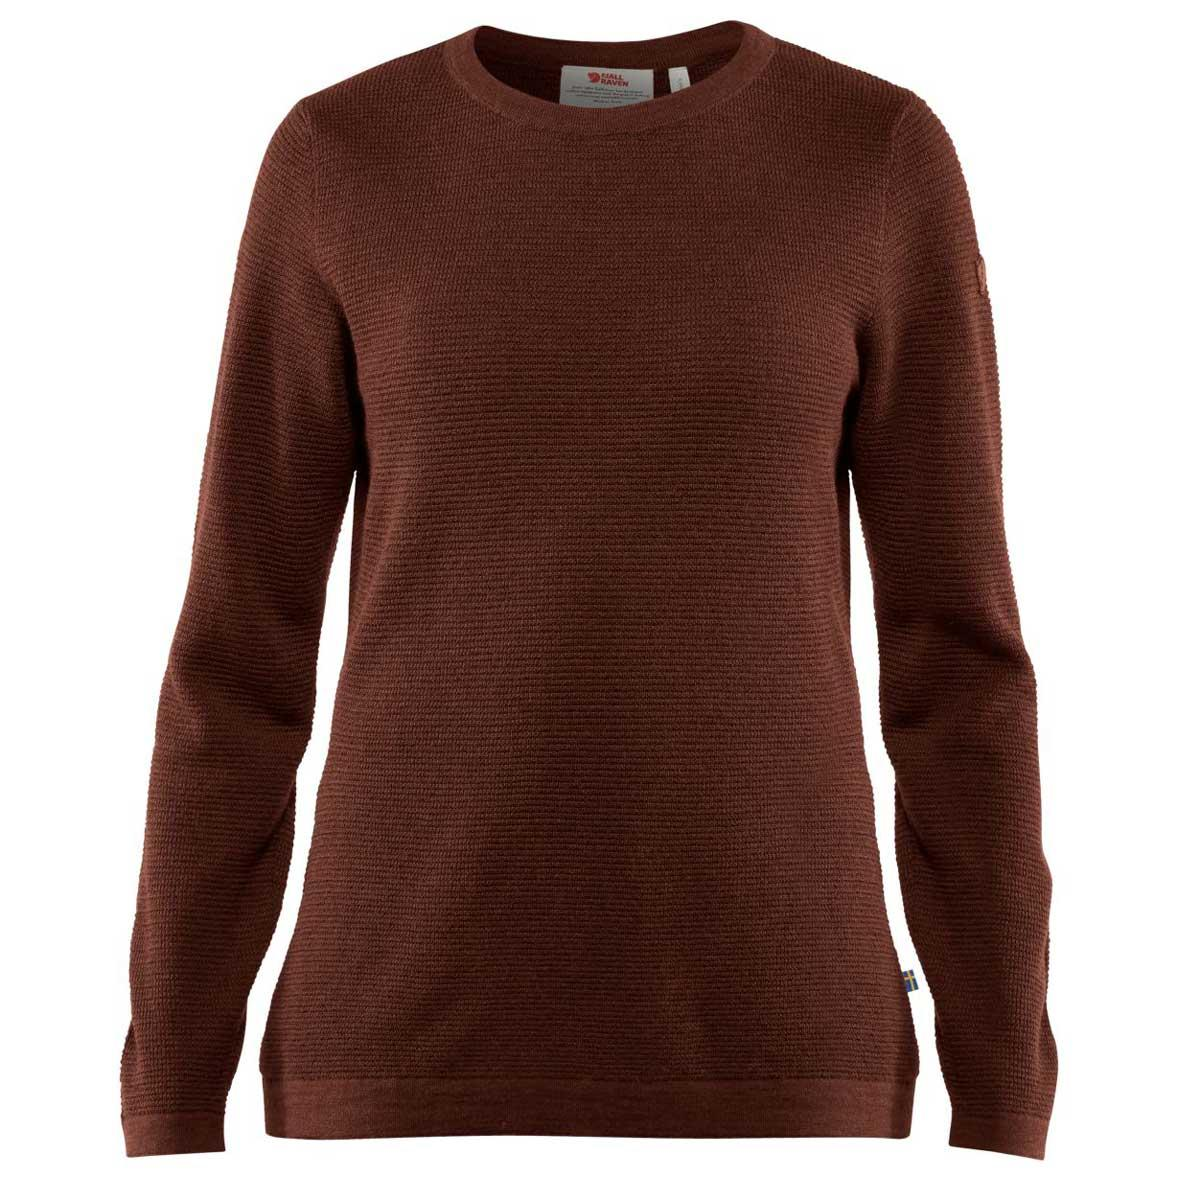 Fjallraven Women's High Coast Merino Sweater